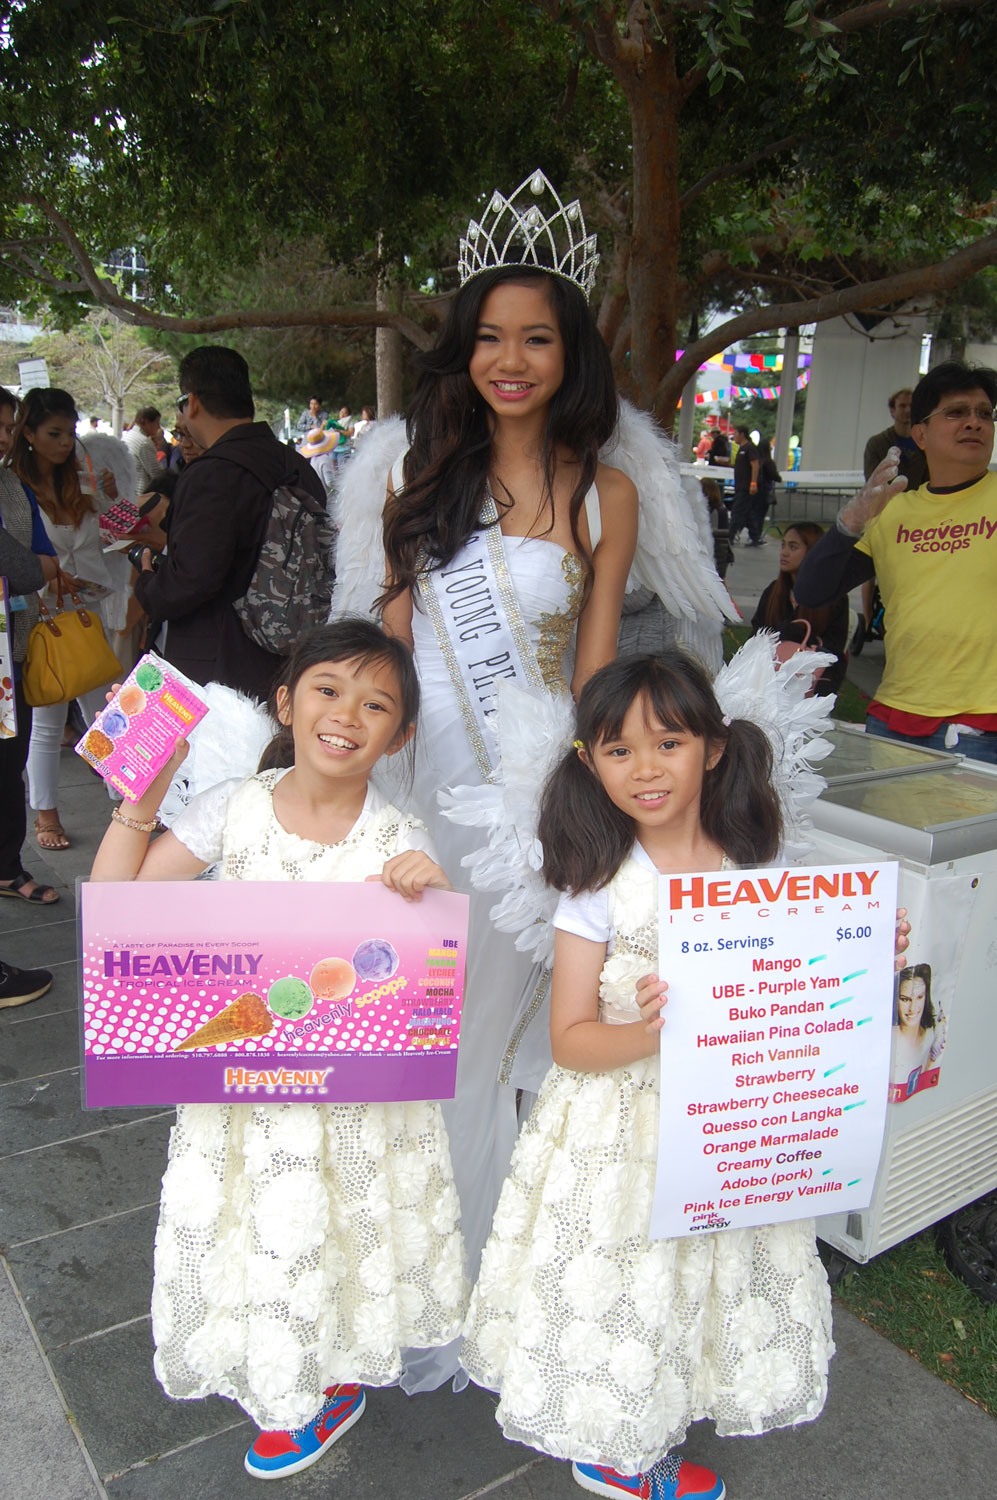 Misss Young Philippines USA Lexus Lagumbay at the Heavenly Ice Cream booth (Photo by Raymond Virata)